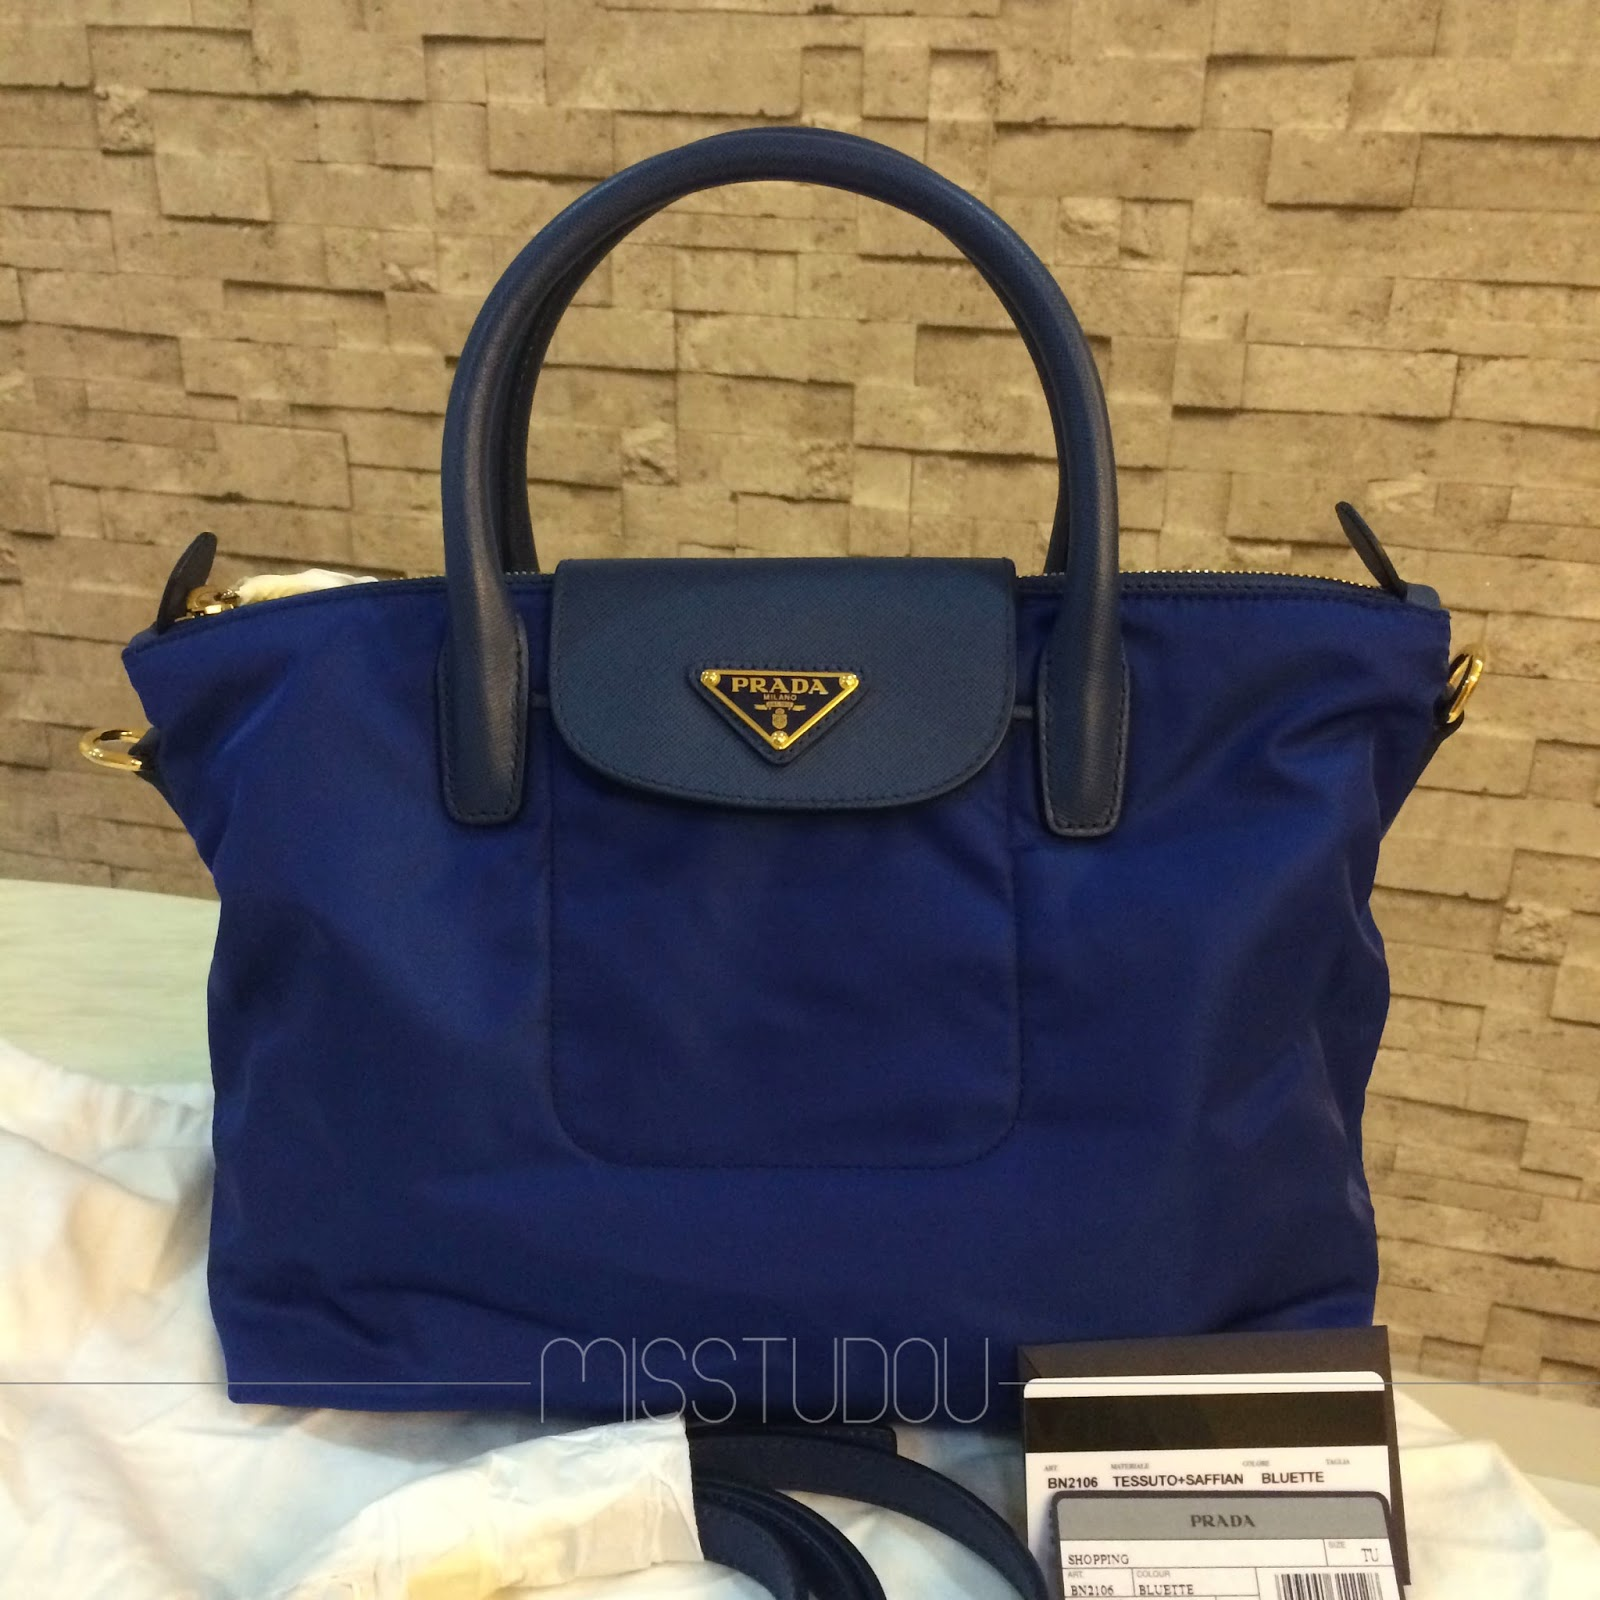 44369a6428e0e6 PRADA TESSUTO SAFFIANO SHOPPING TOTE (BN2106). 100% AUTHENTIC